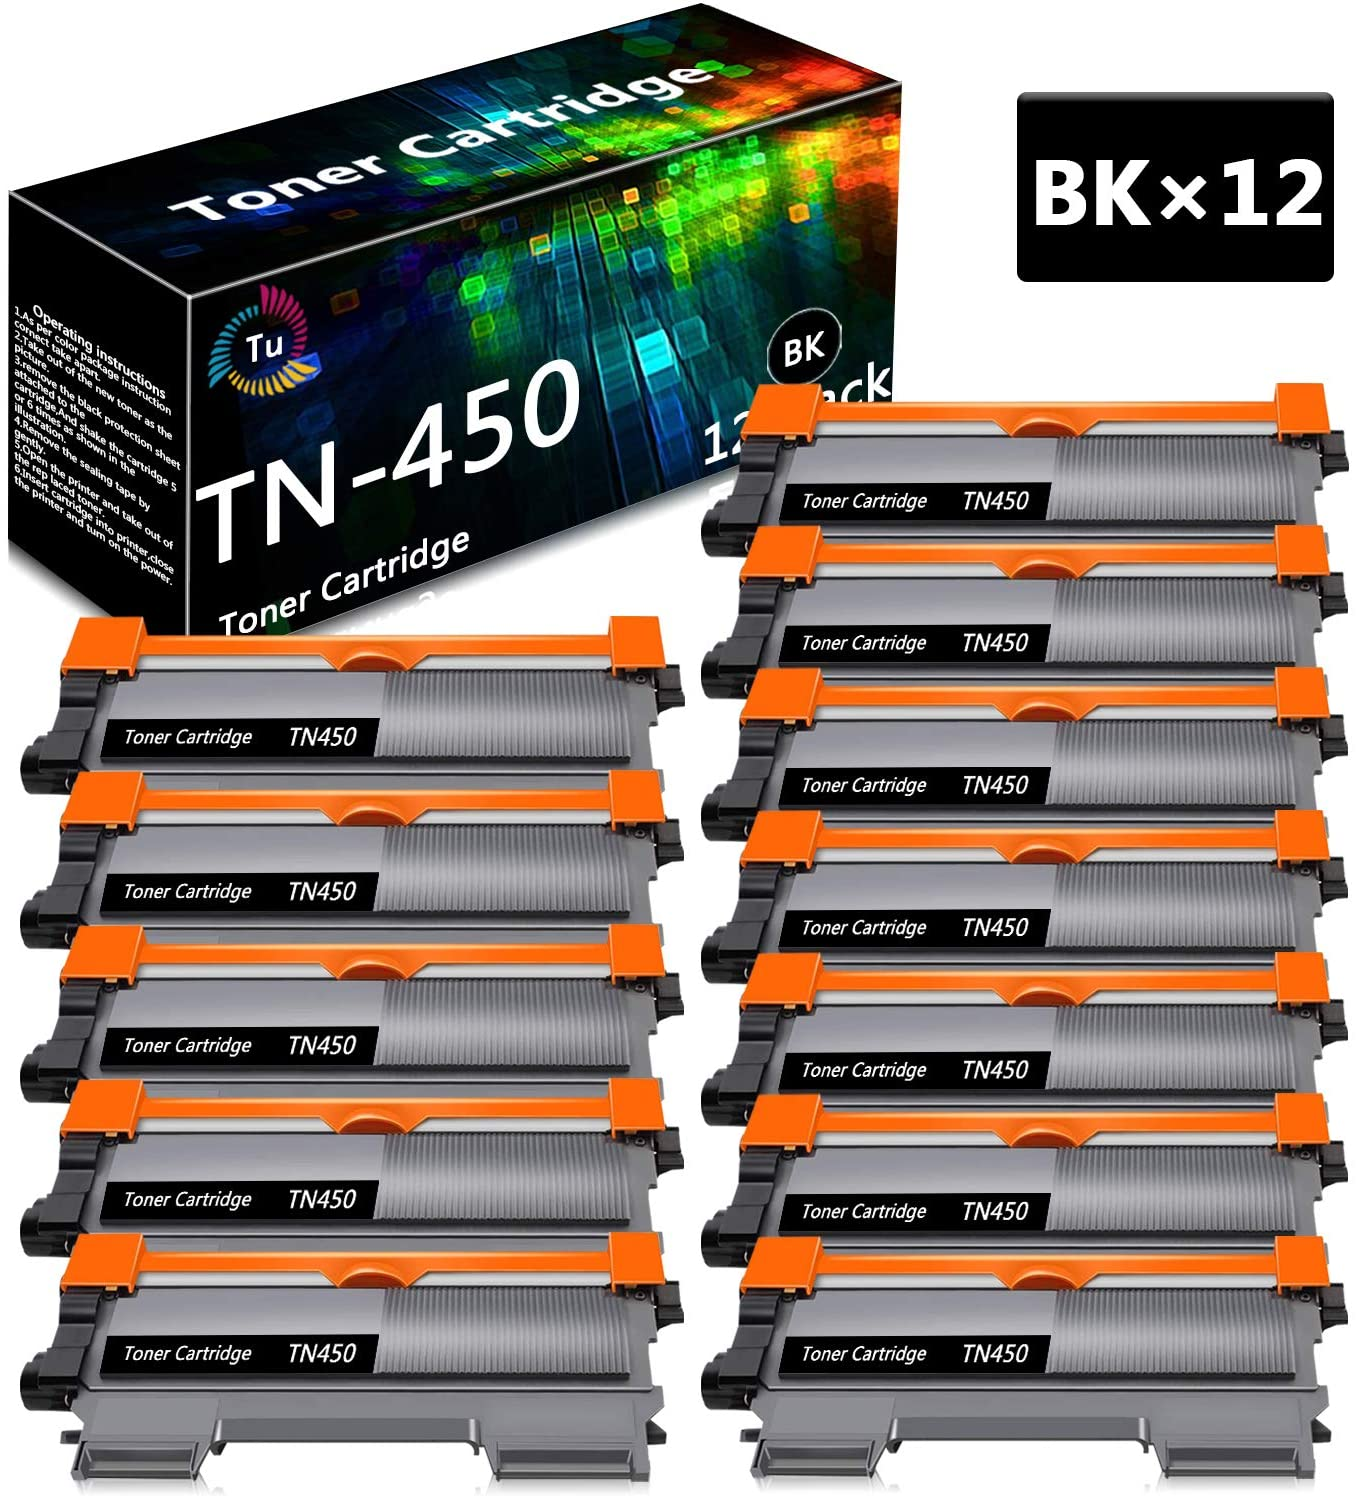 TN450 TN-450 Black 12 Pack Compatible Toner Cartridge Replacement for Brother DCP-7060D 7065D Intellifax 2840 2940 MFC-7240 7360N 7365DN 7460DN HL-2130 2220 2230 2240 Printer, Sold by TueInk